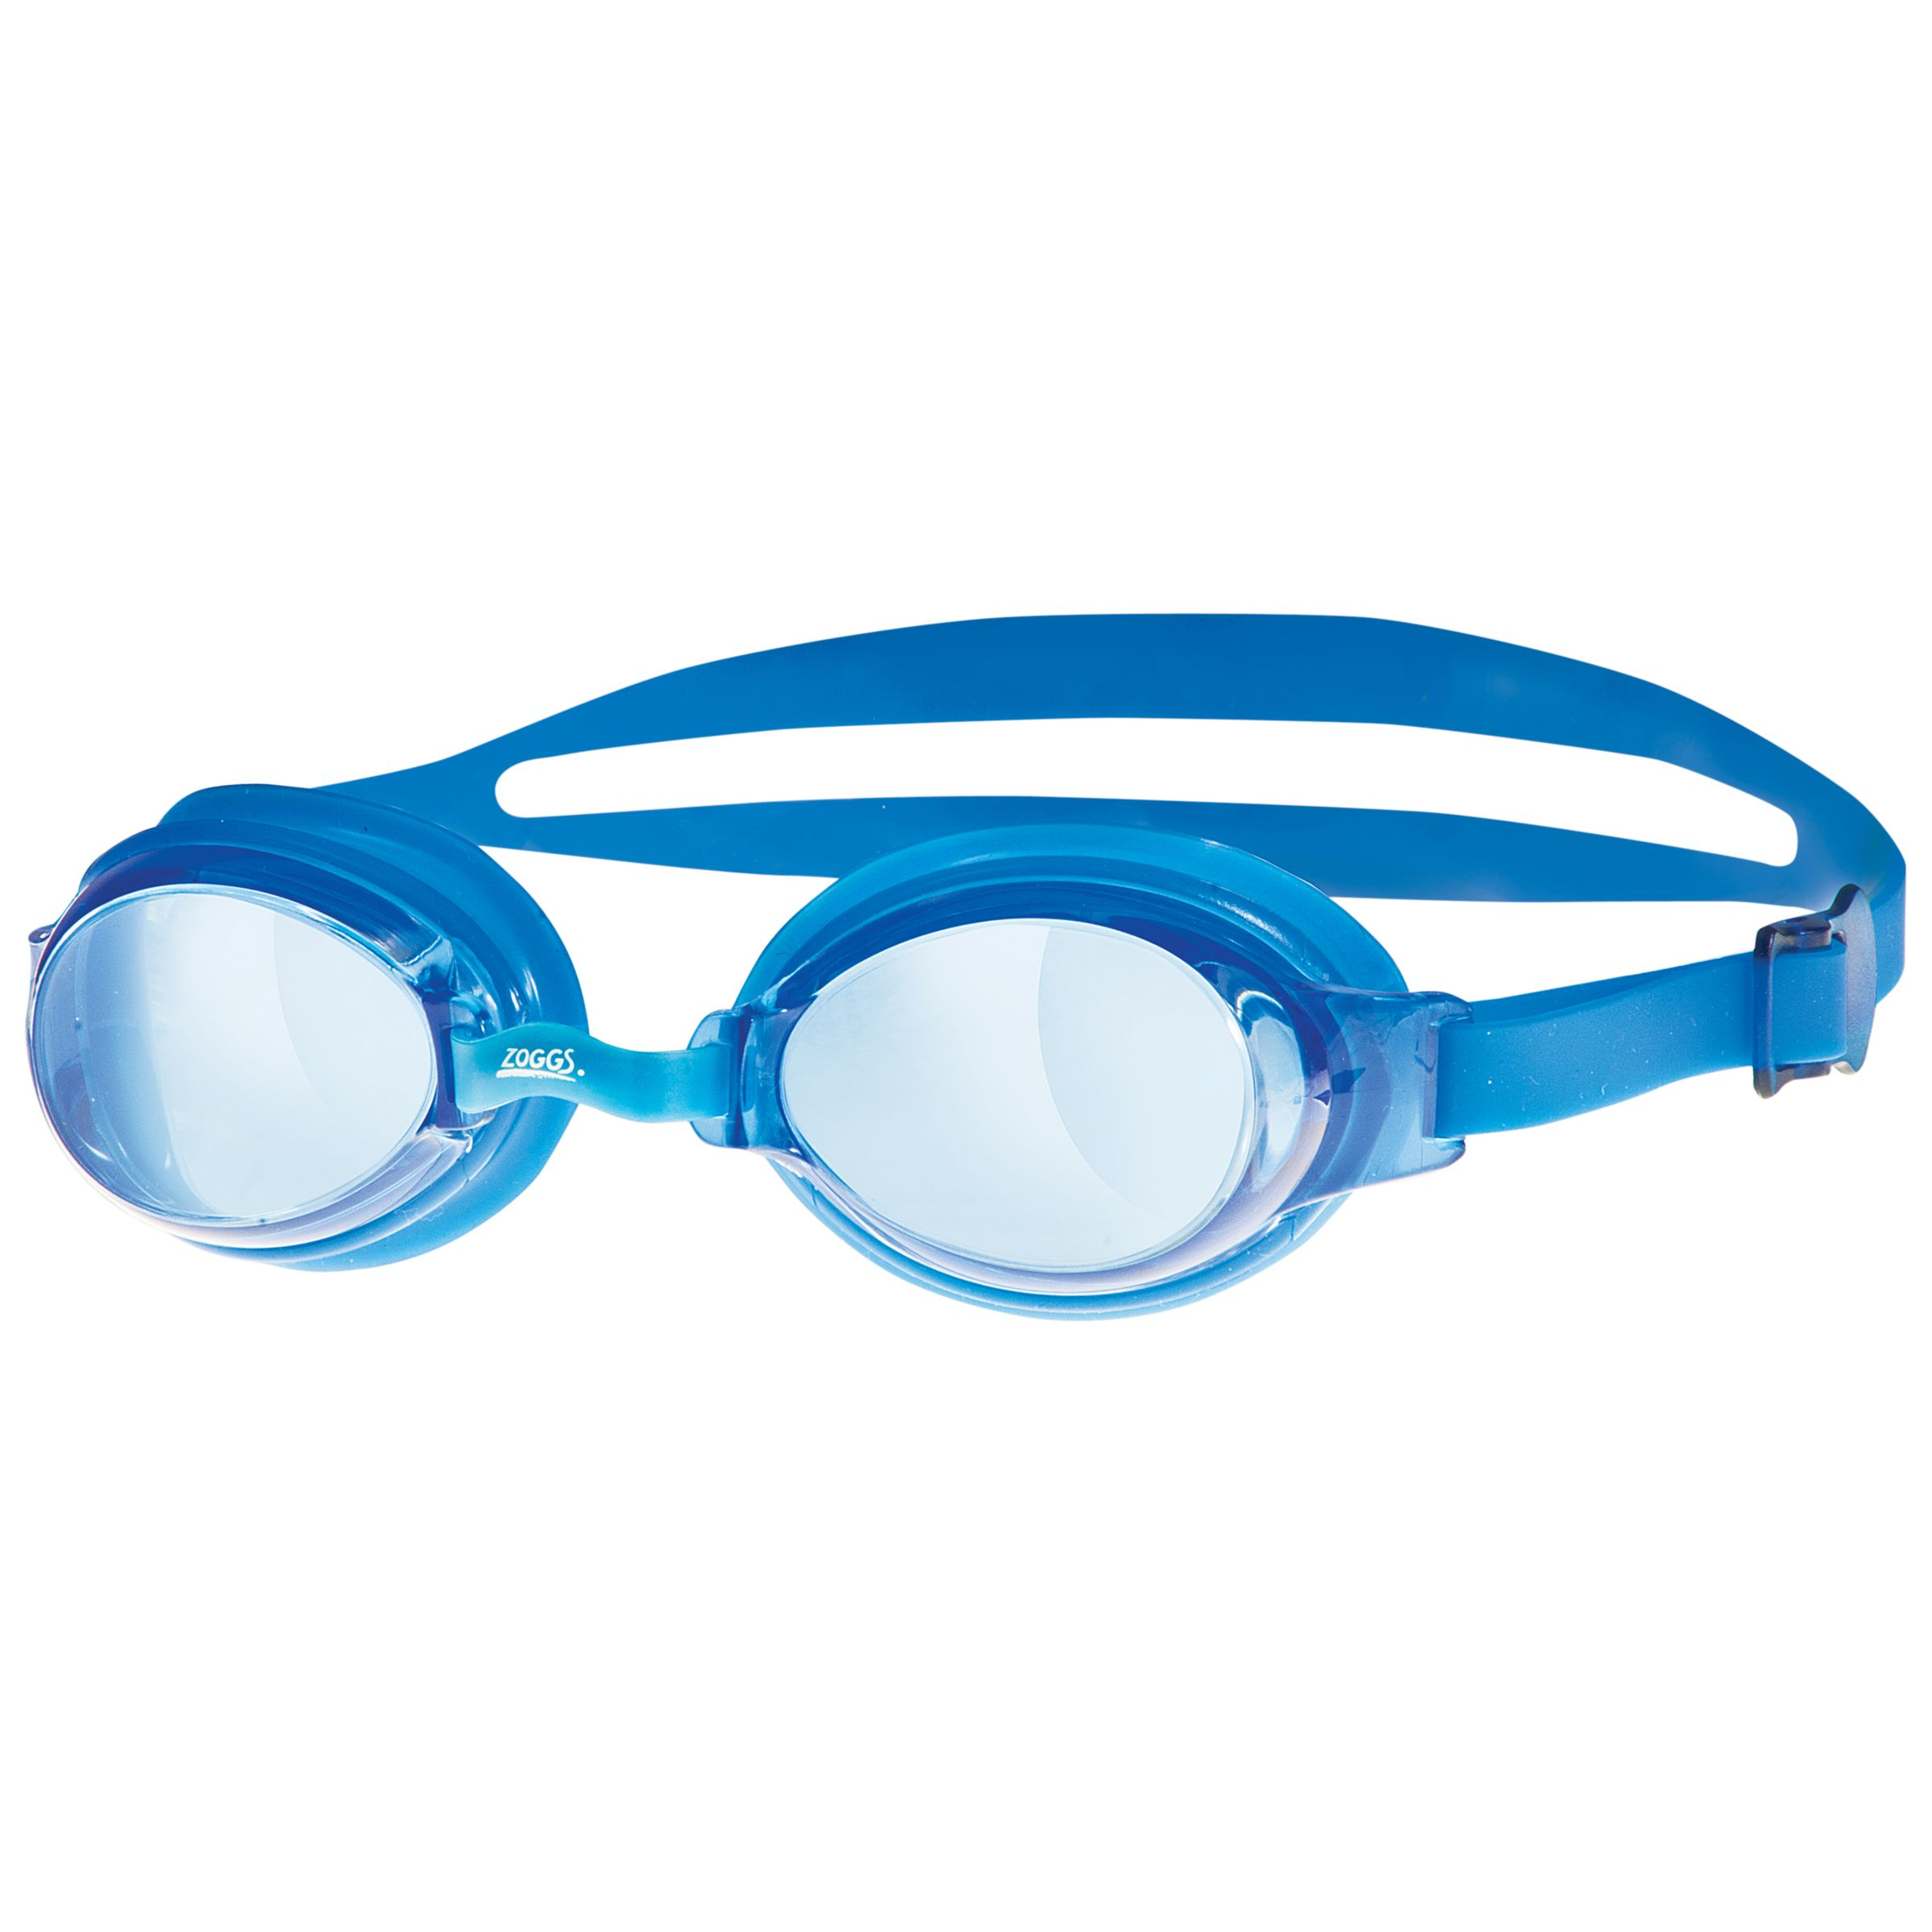 Zoggs Hydro Swimming Goggles, Assorted